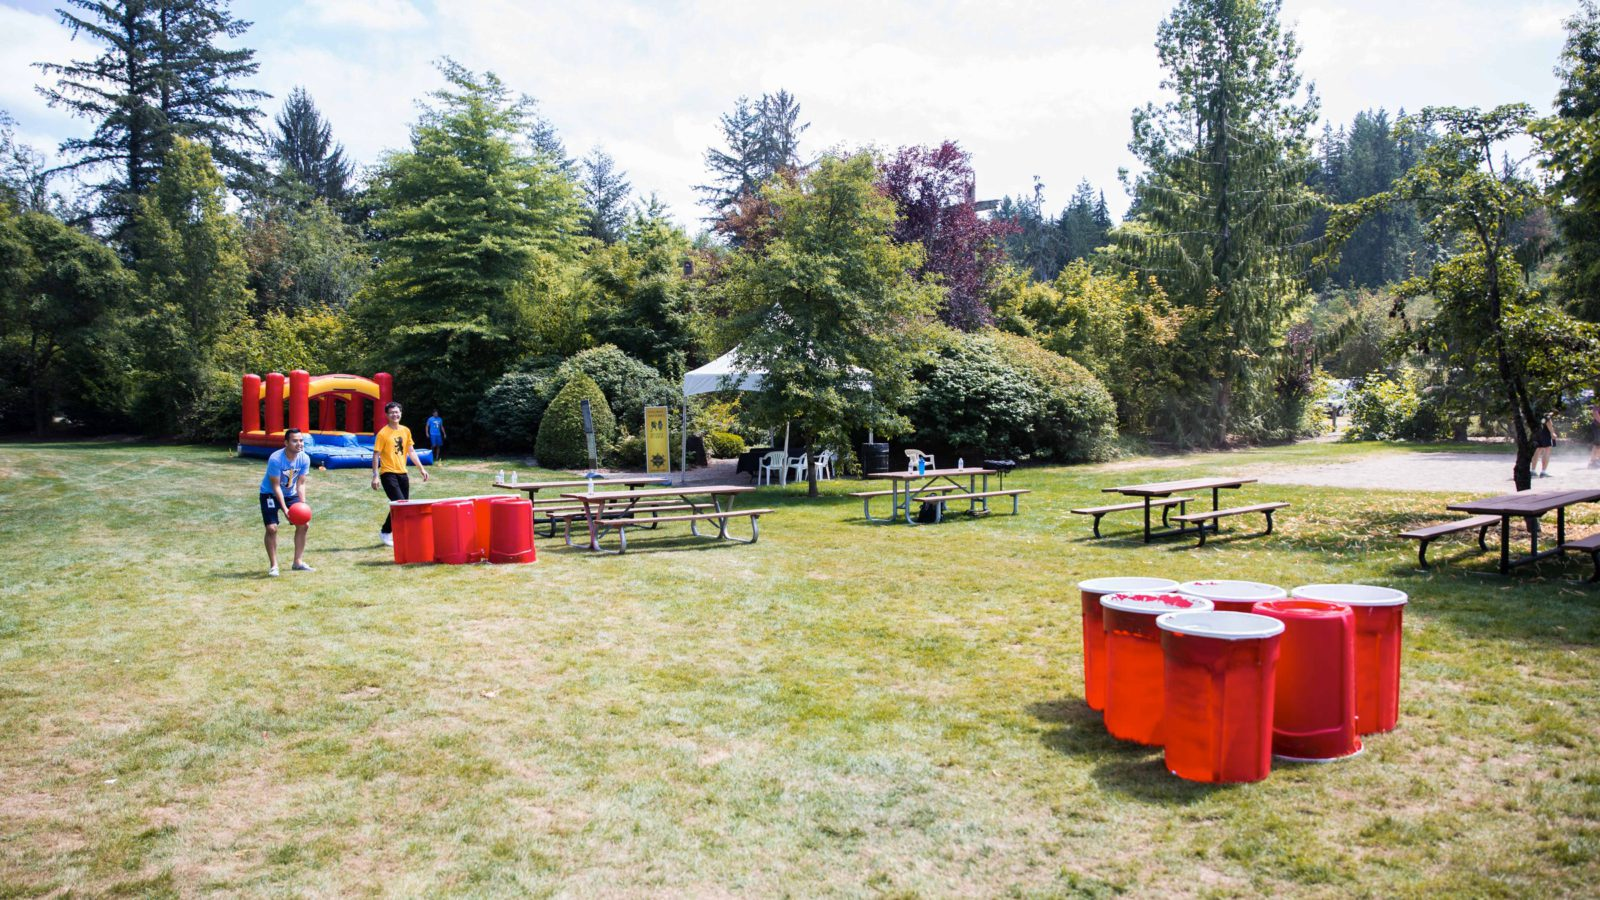 Giant Outdoor Games